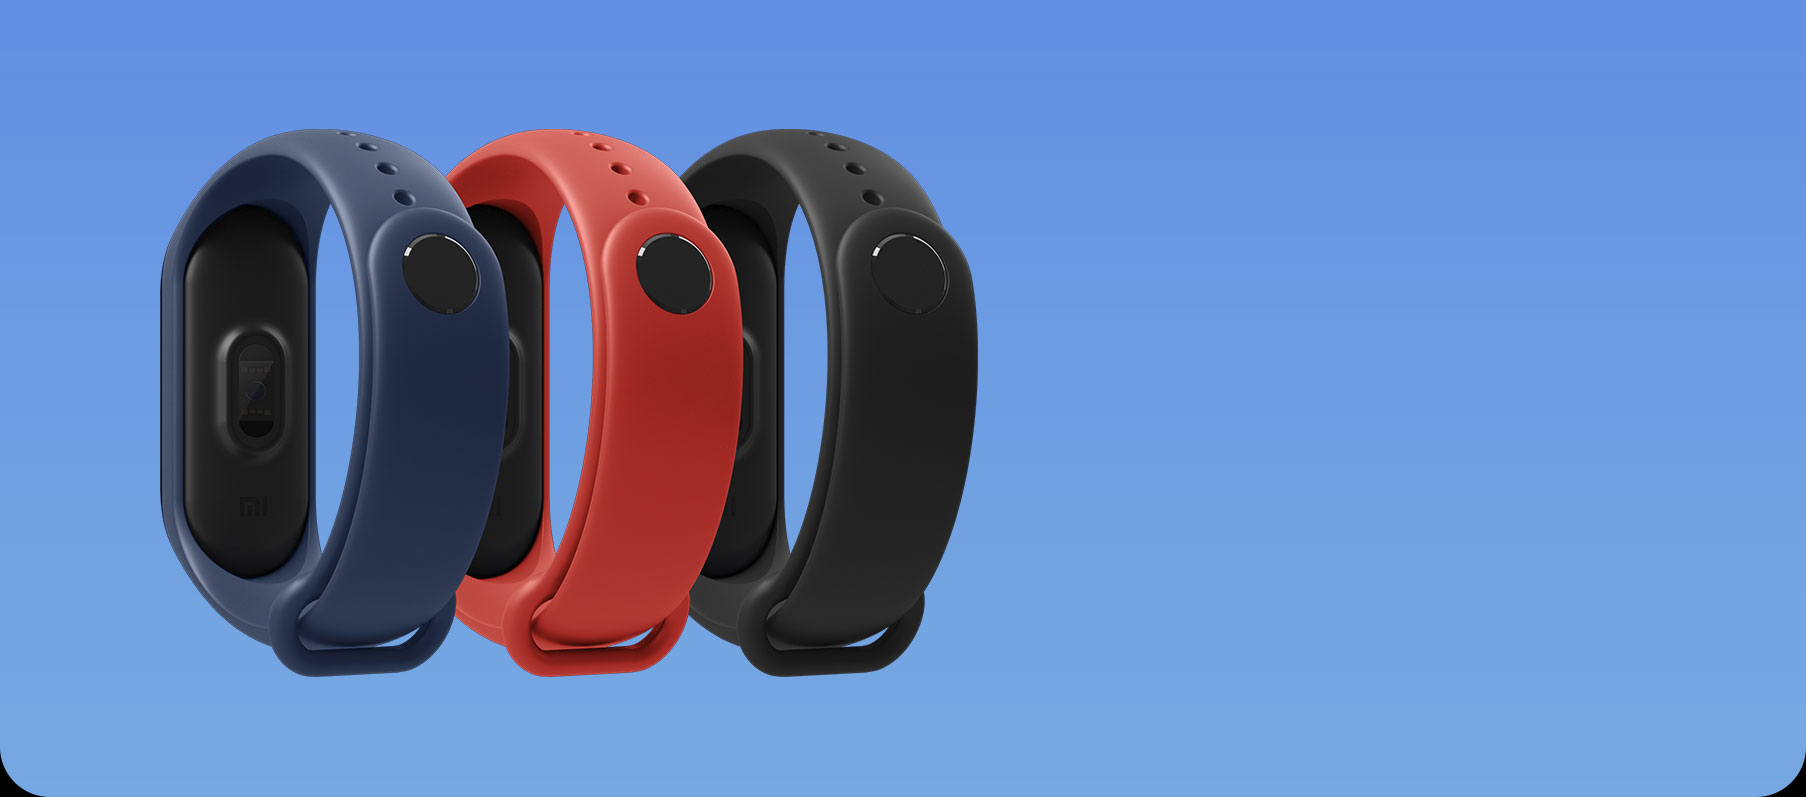 *The standard color of the Mi Band 3 is graphite black. Other colors are sold separately